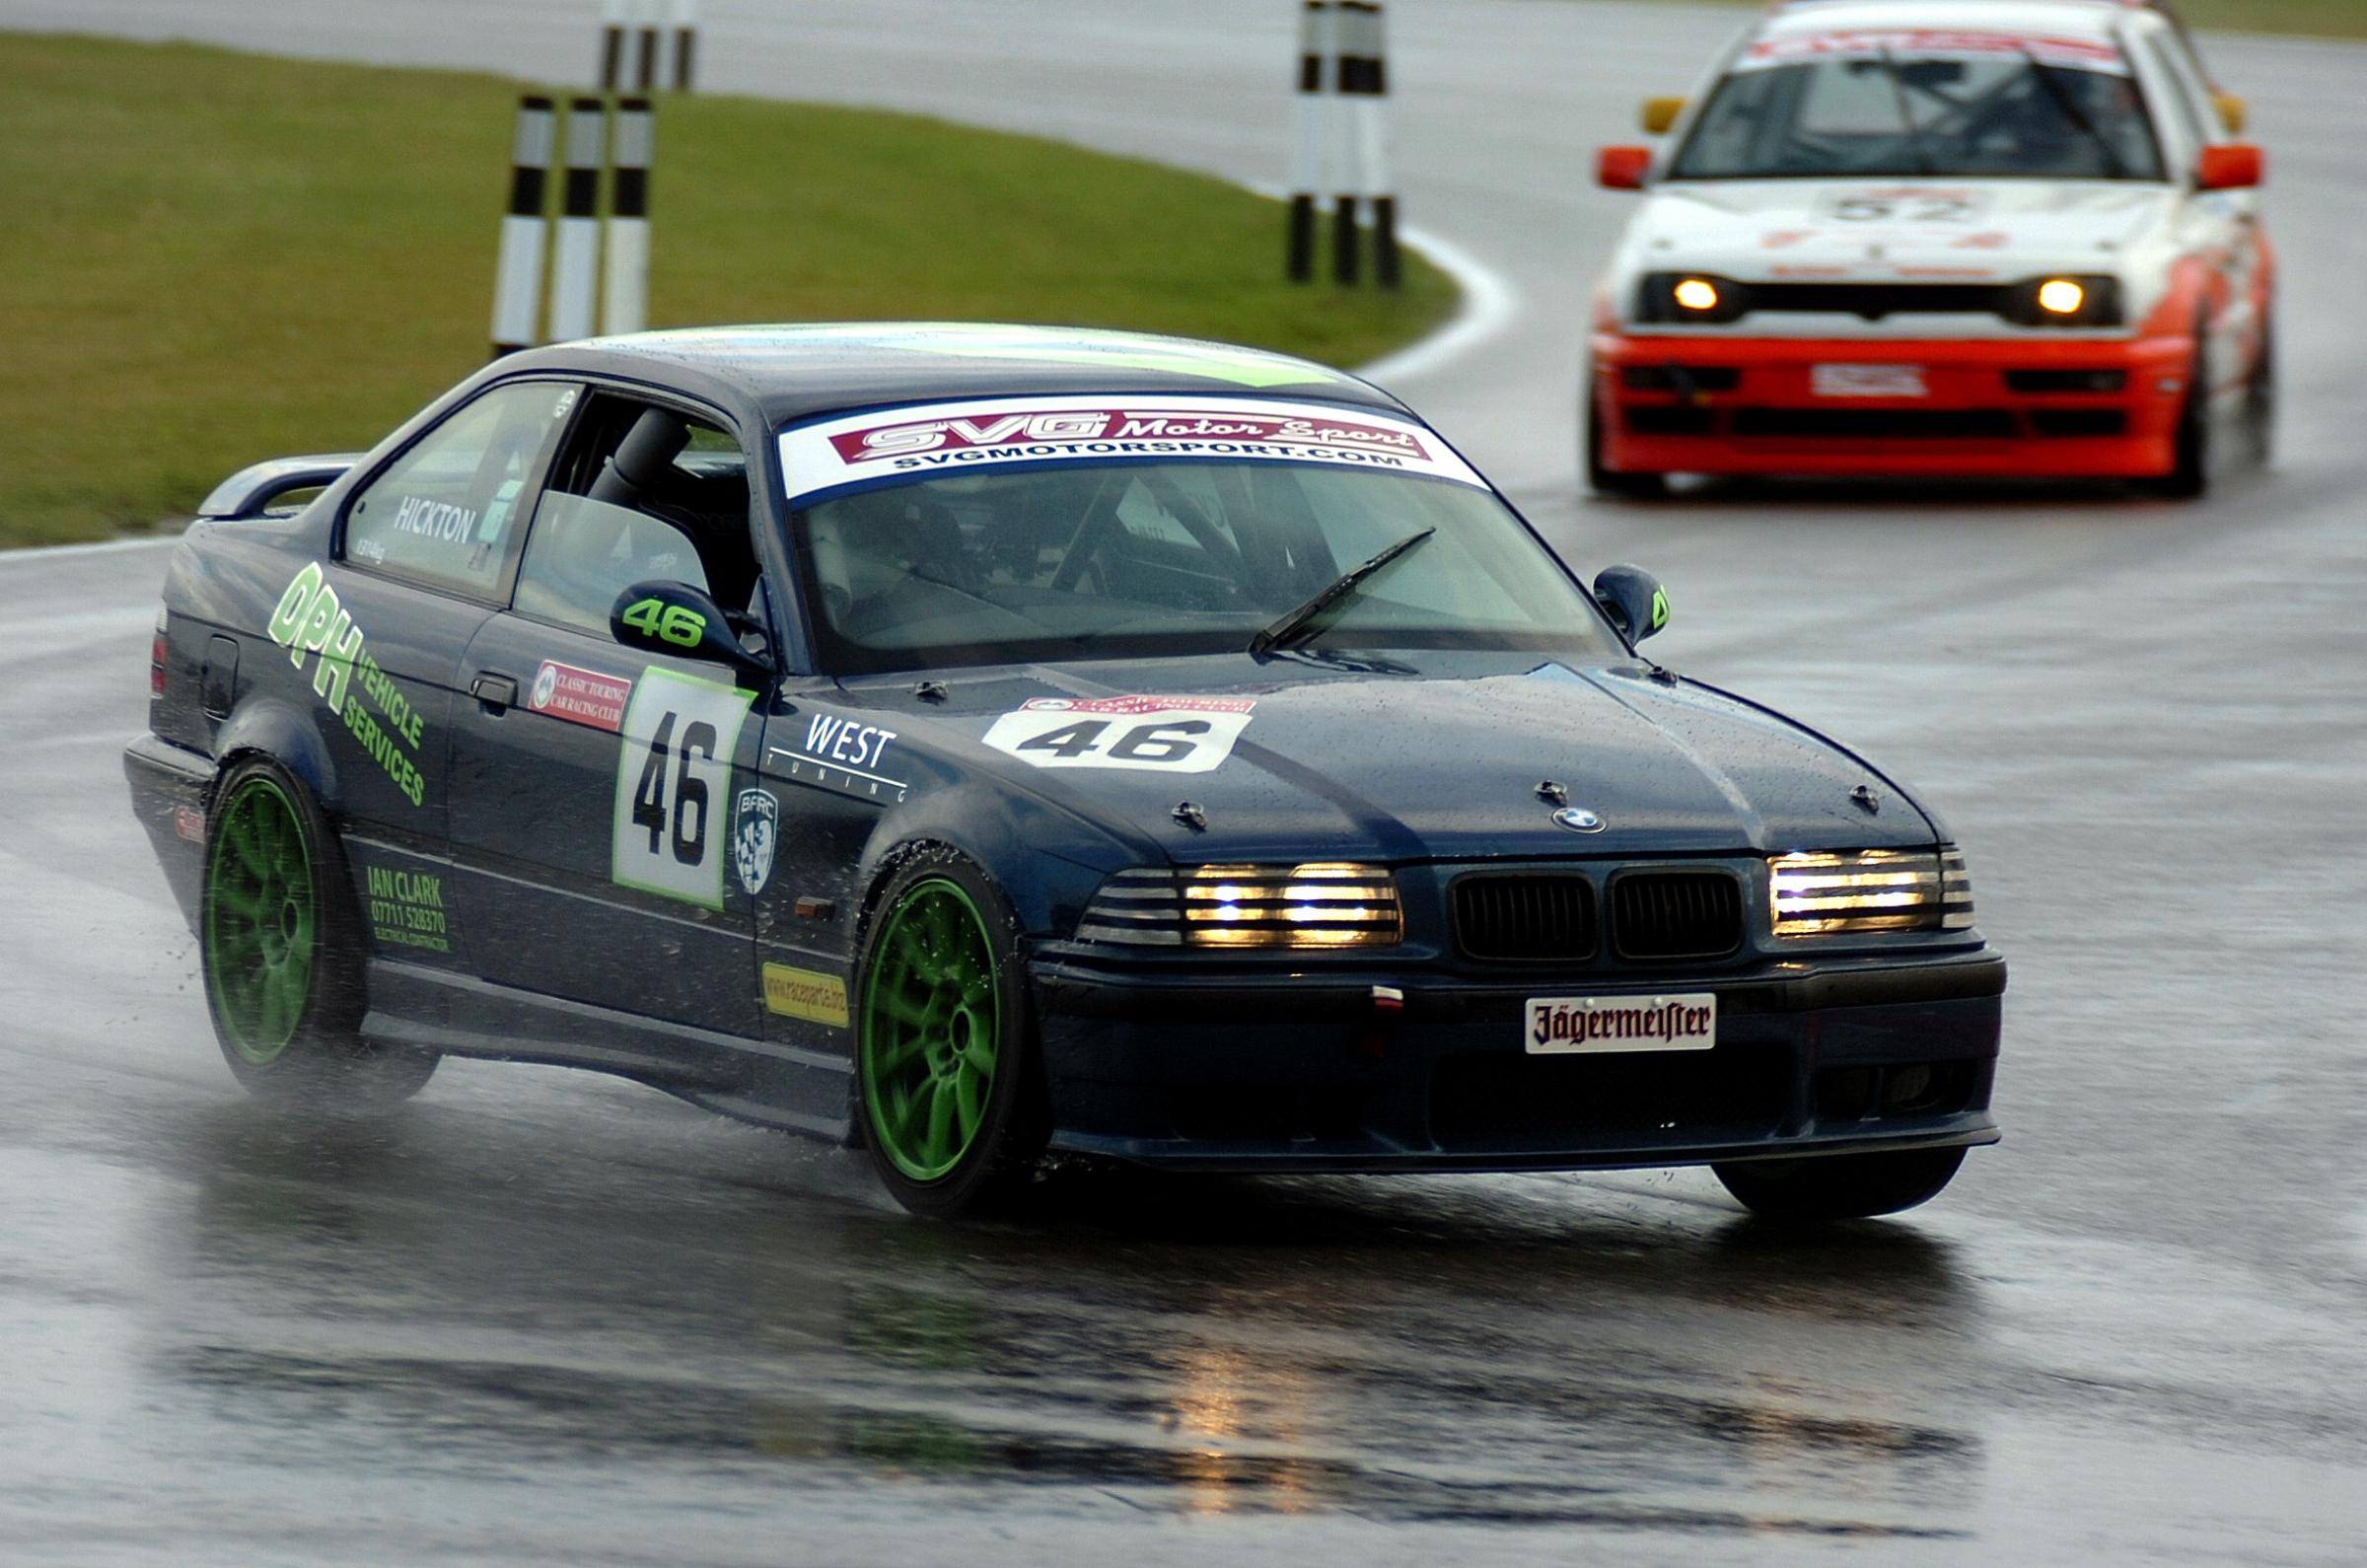 David Hickton at Snetterton. Words and picture: Derek Binsted